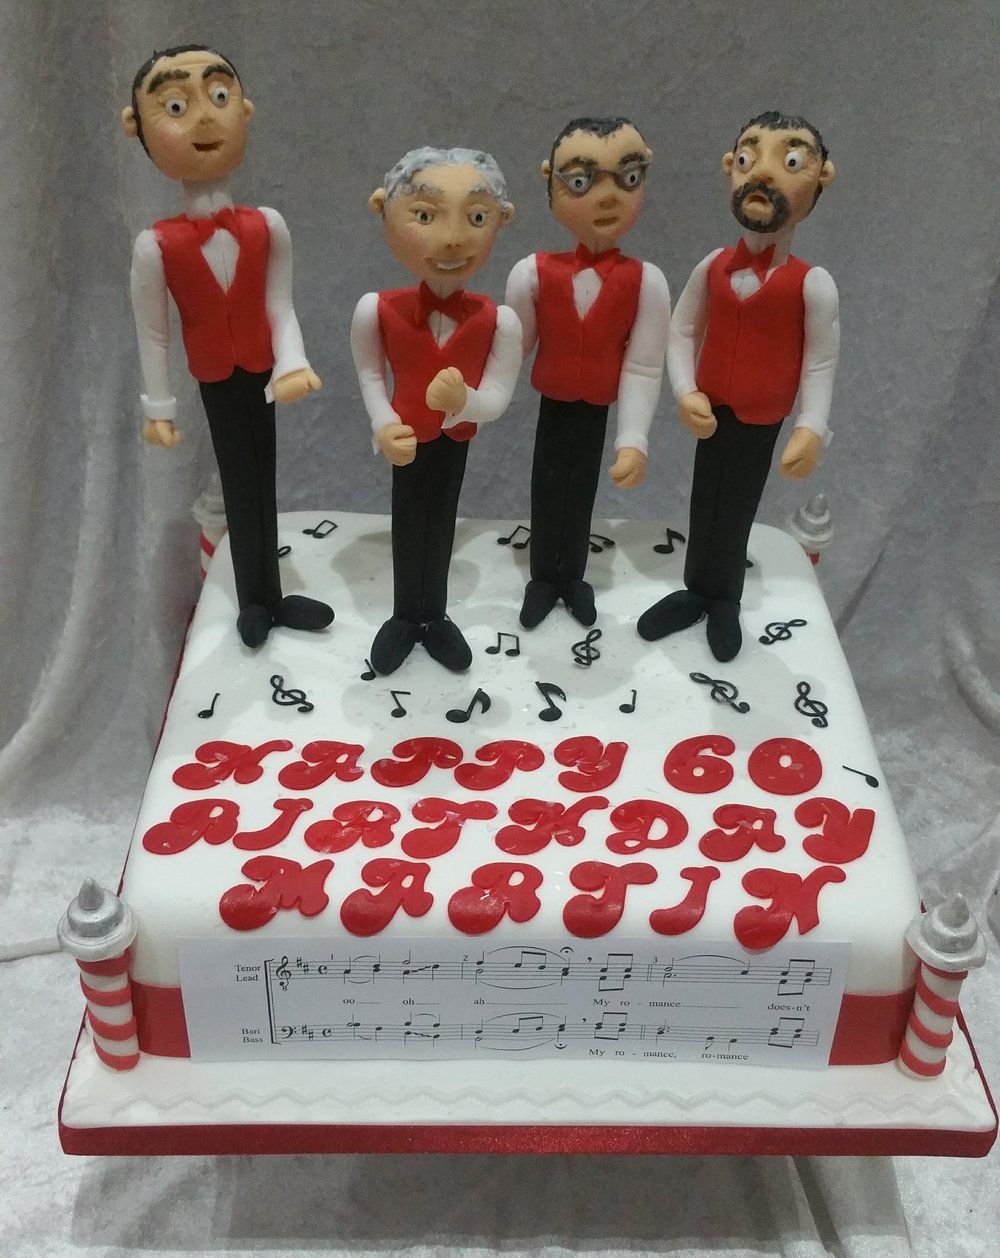 Barber's shop Cake - A fun cake for a passionate barber's shop singer.  Hand made figures of Martin and his friends, made to detail, together with musical notes of his favourite song and barber's shop poles.